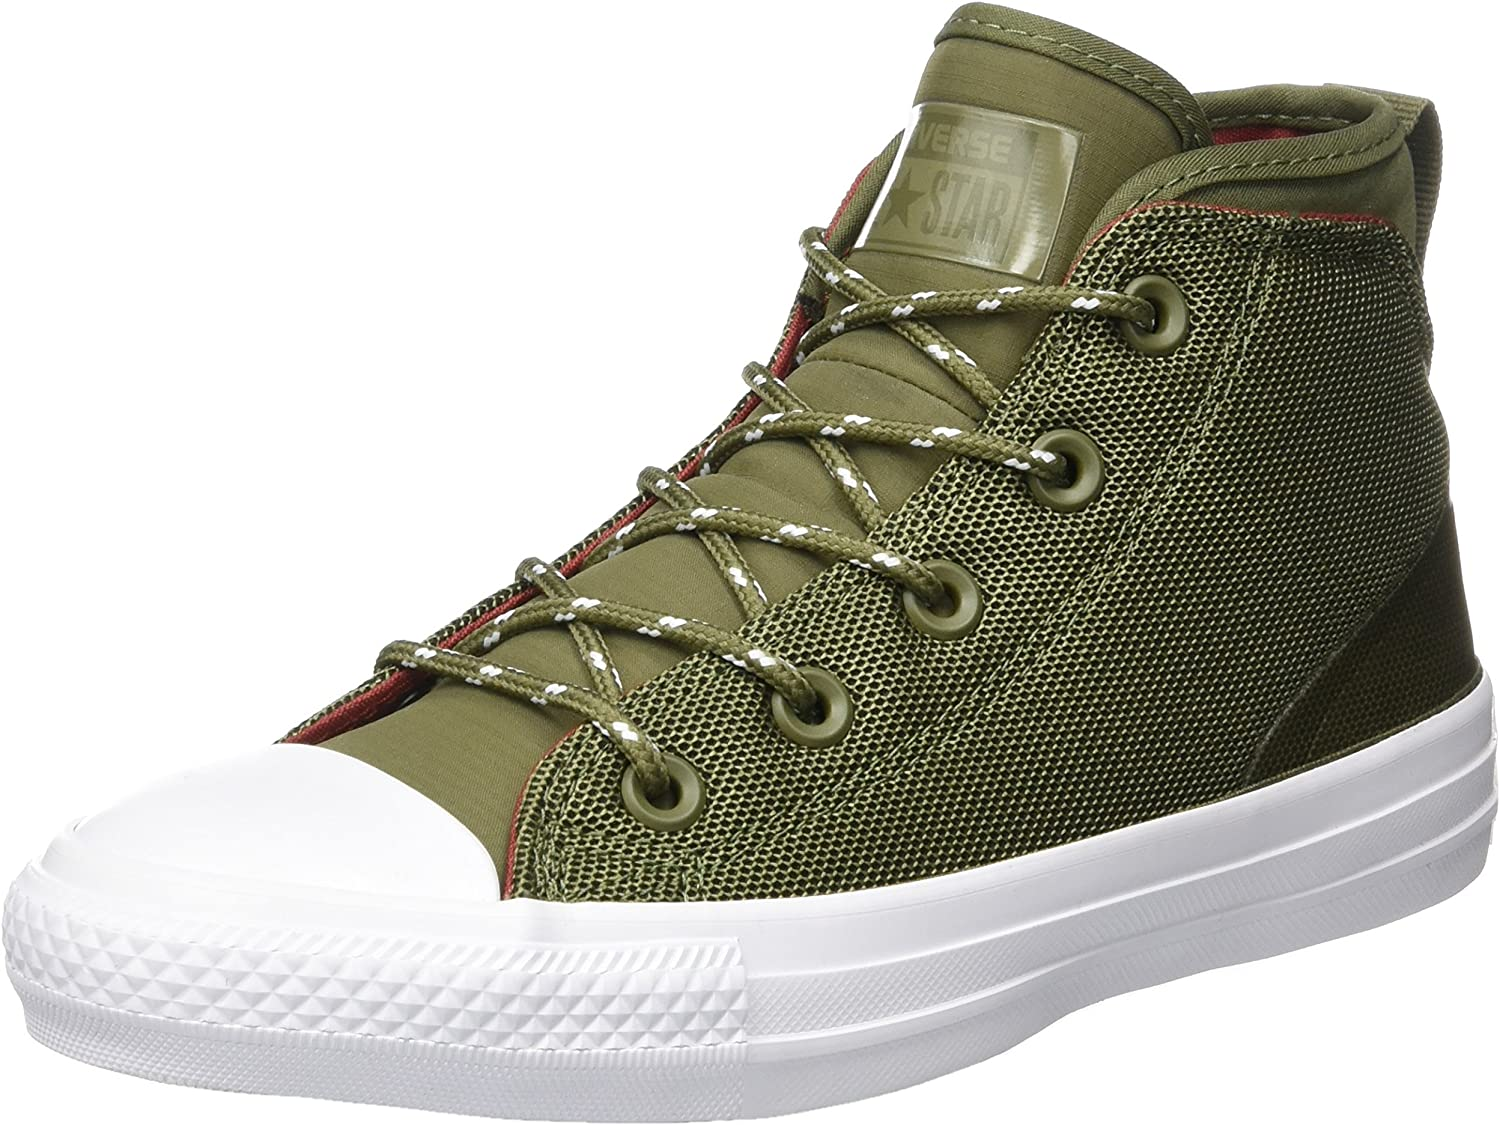 CONVERSE - CT AS Syde Street 157525C - Olive